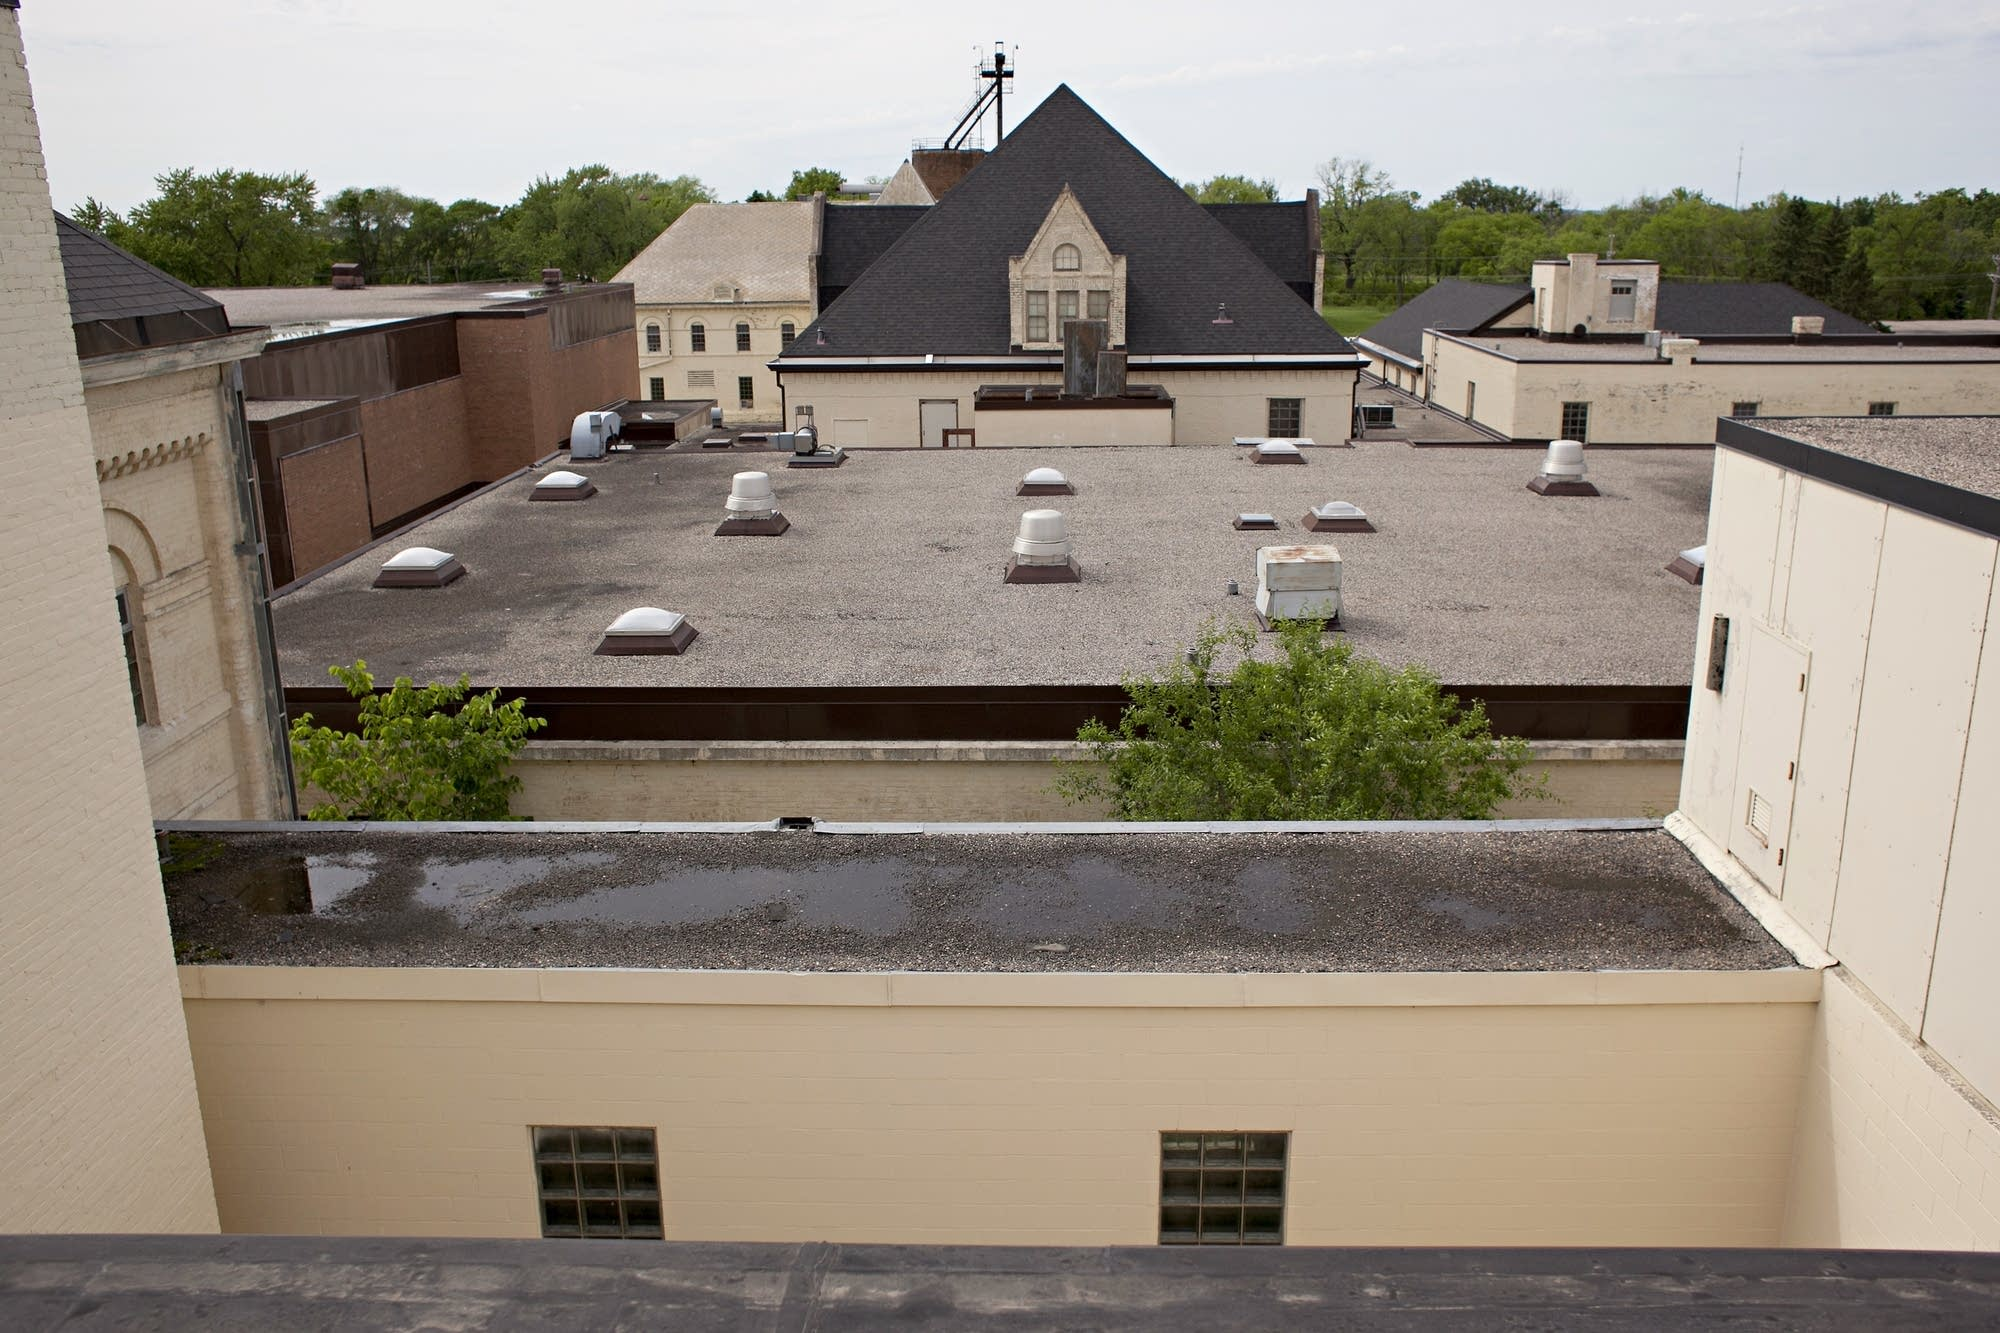 Wiew of the former state hospital in Fergus Falls across the roof.